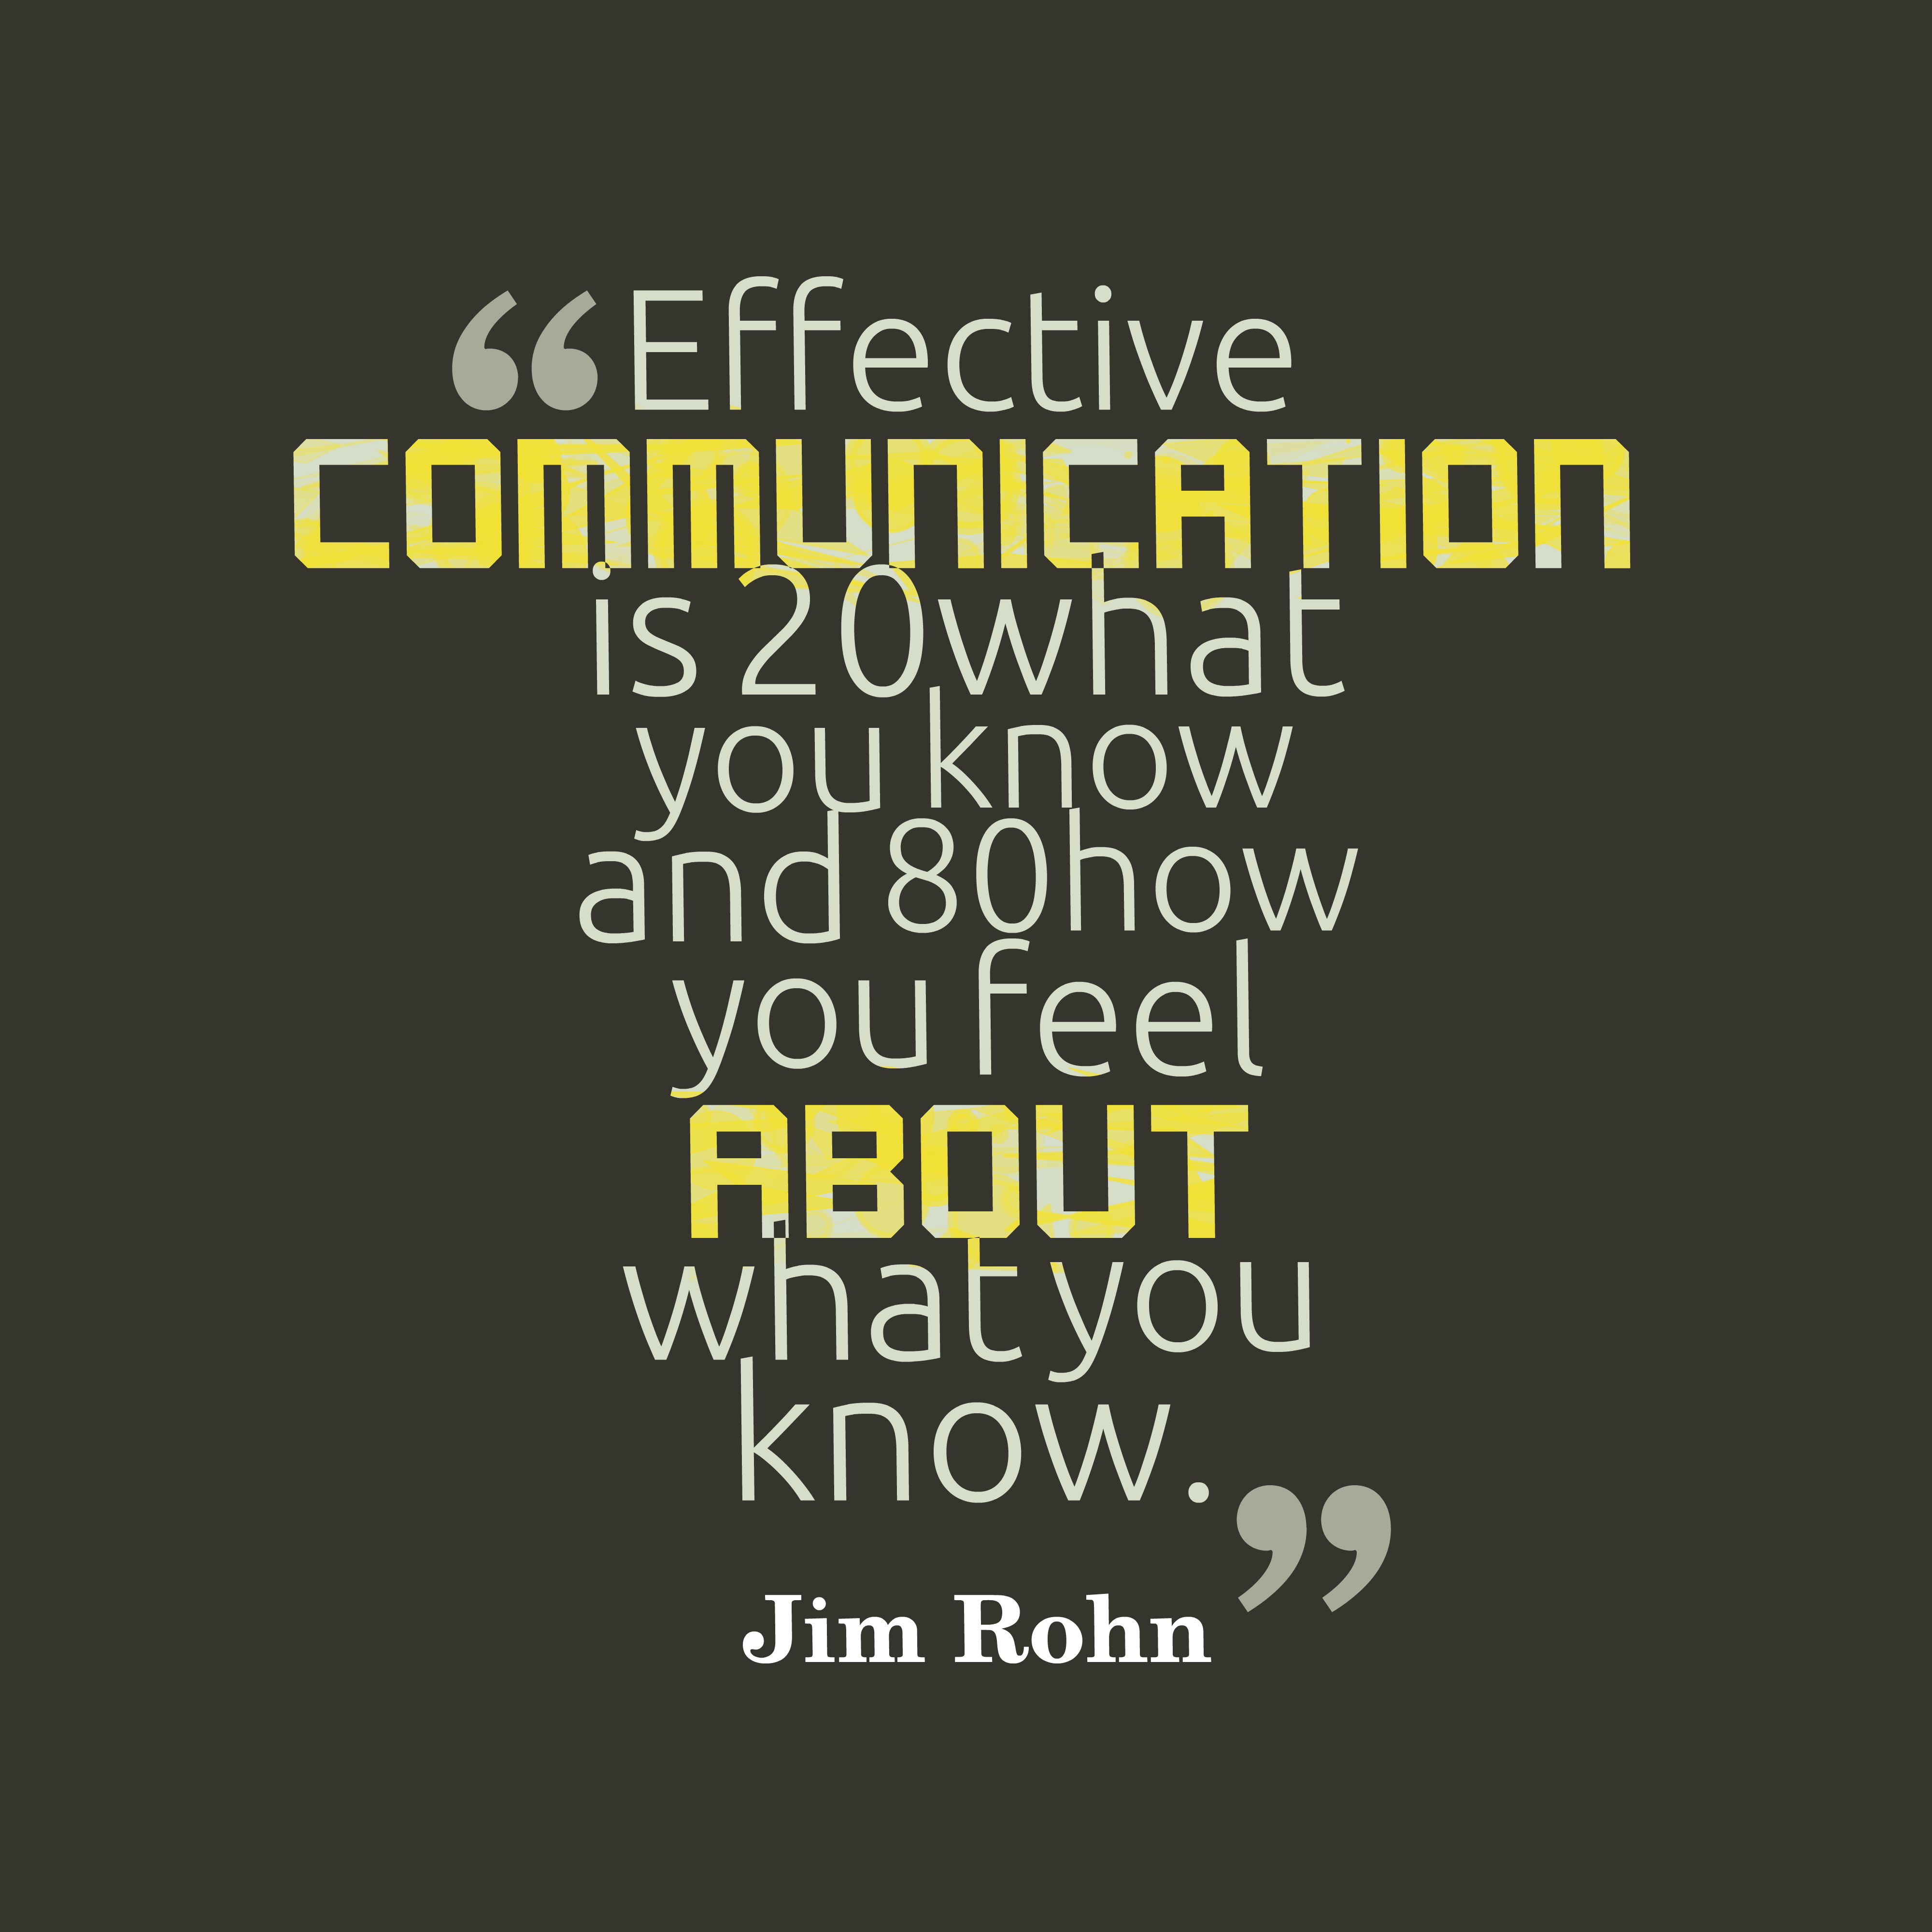 Quotes About Love Relationships: Good Communication Quotes. QuotesGram